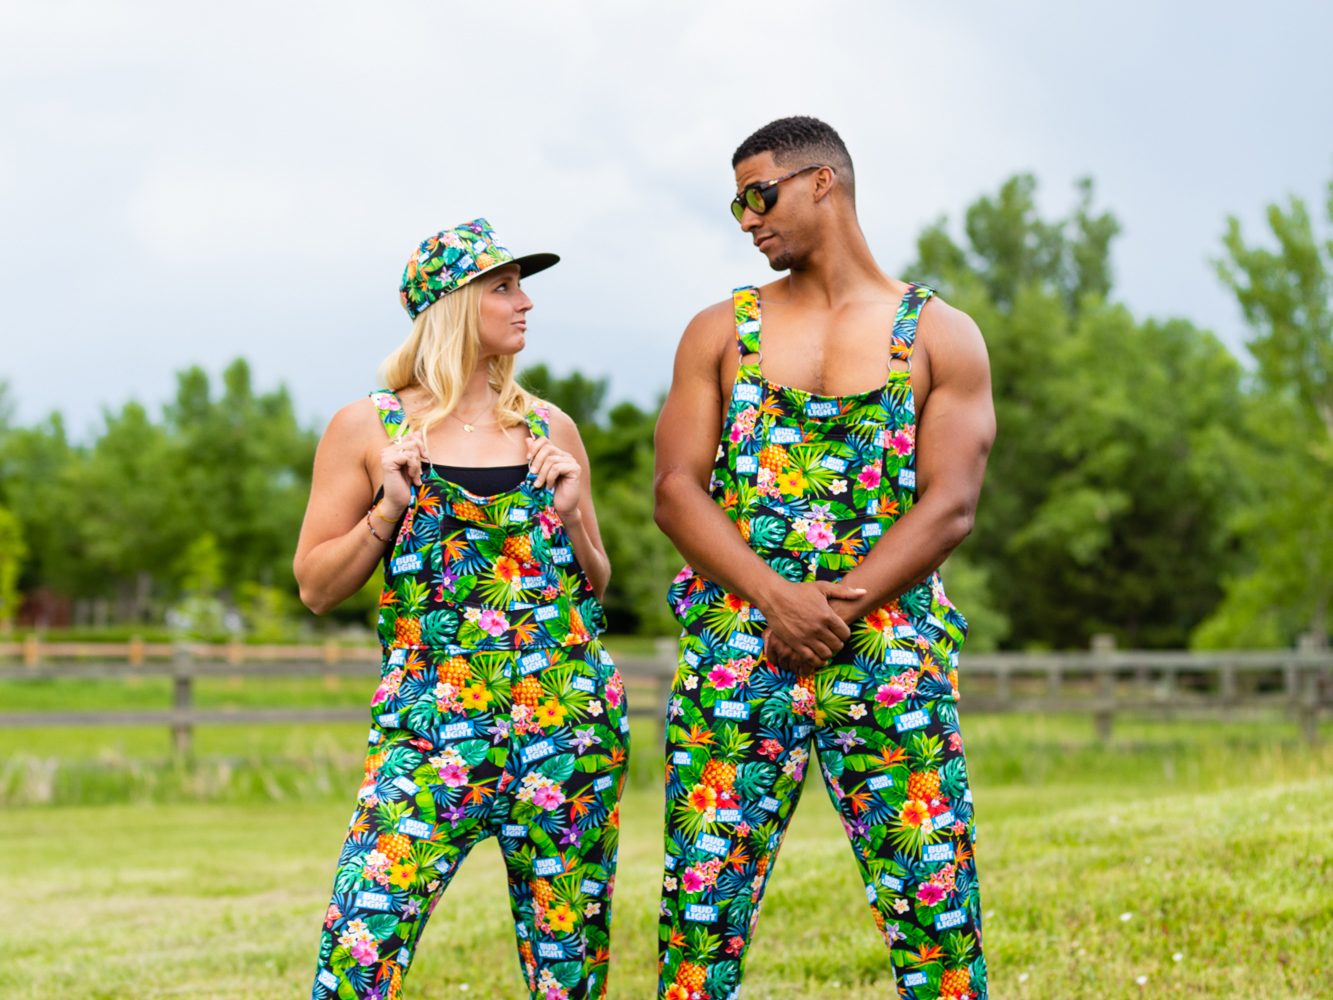 Bud Light's 'Pajameralls' Are Sure to Turn Heads At Your Next